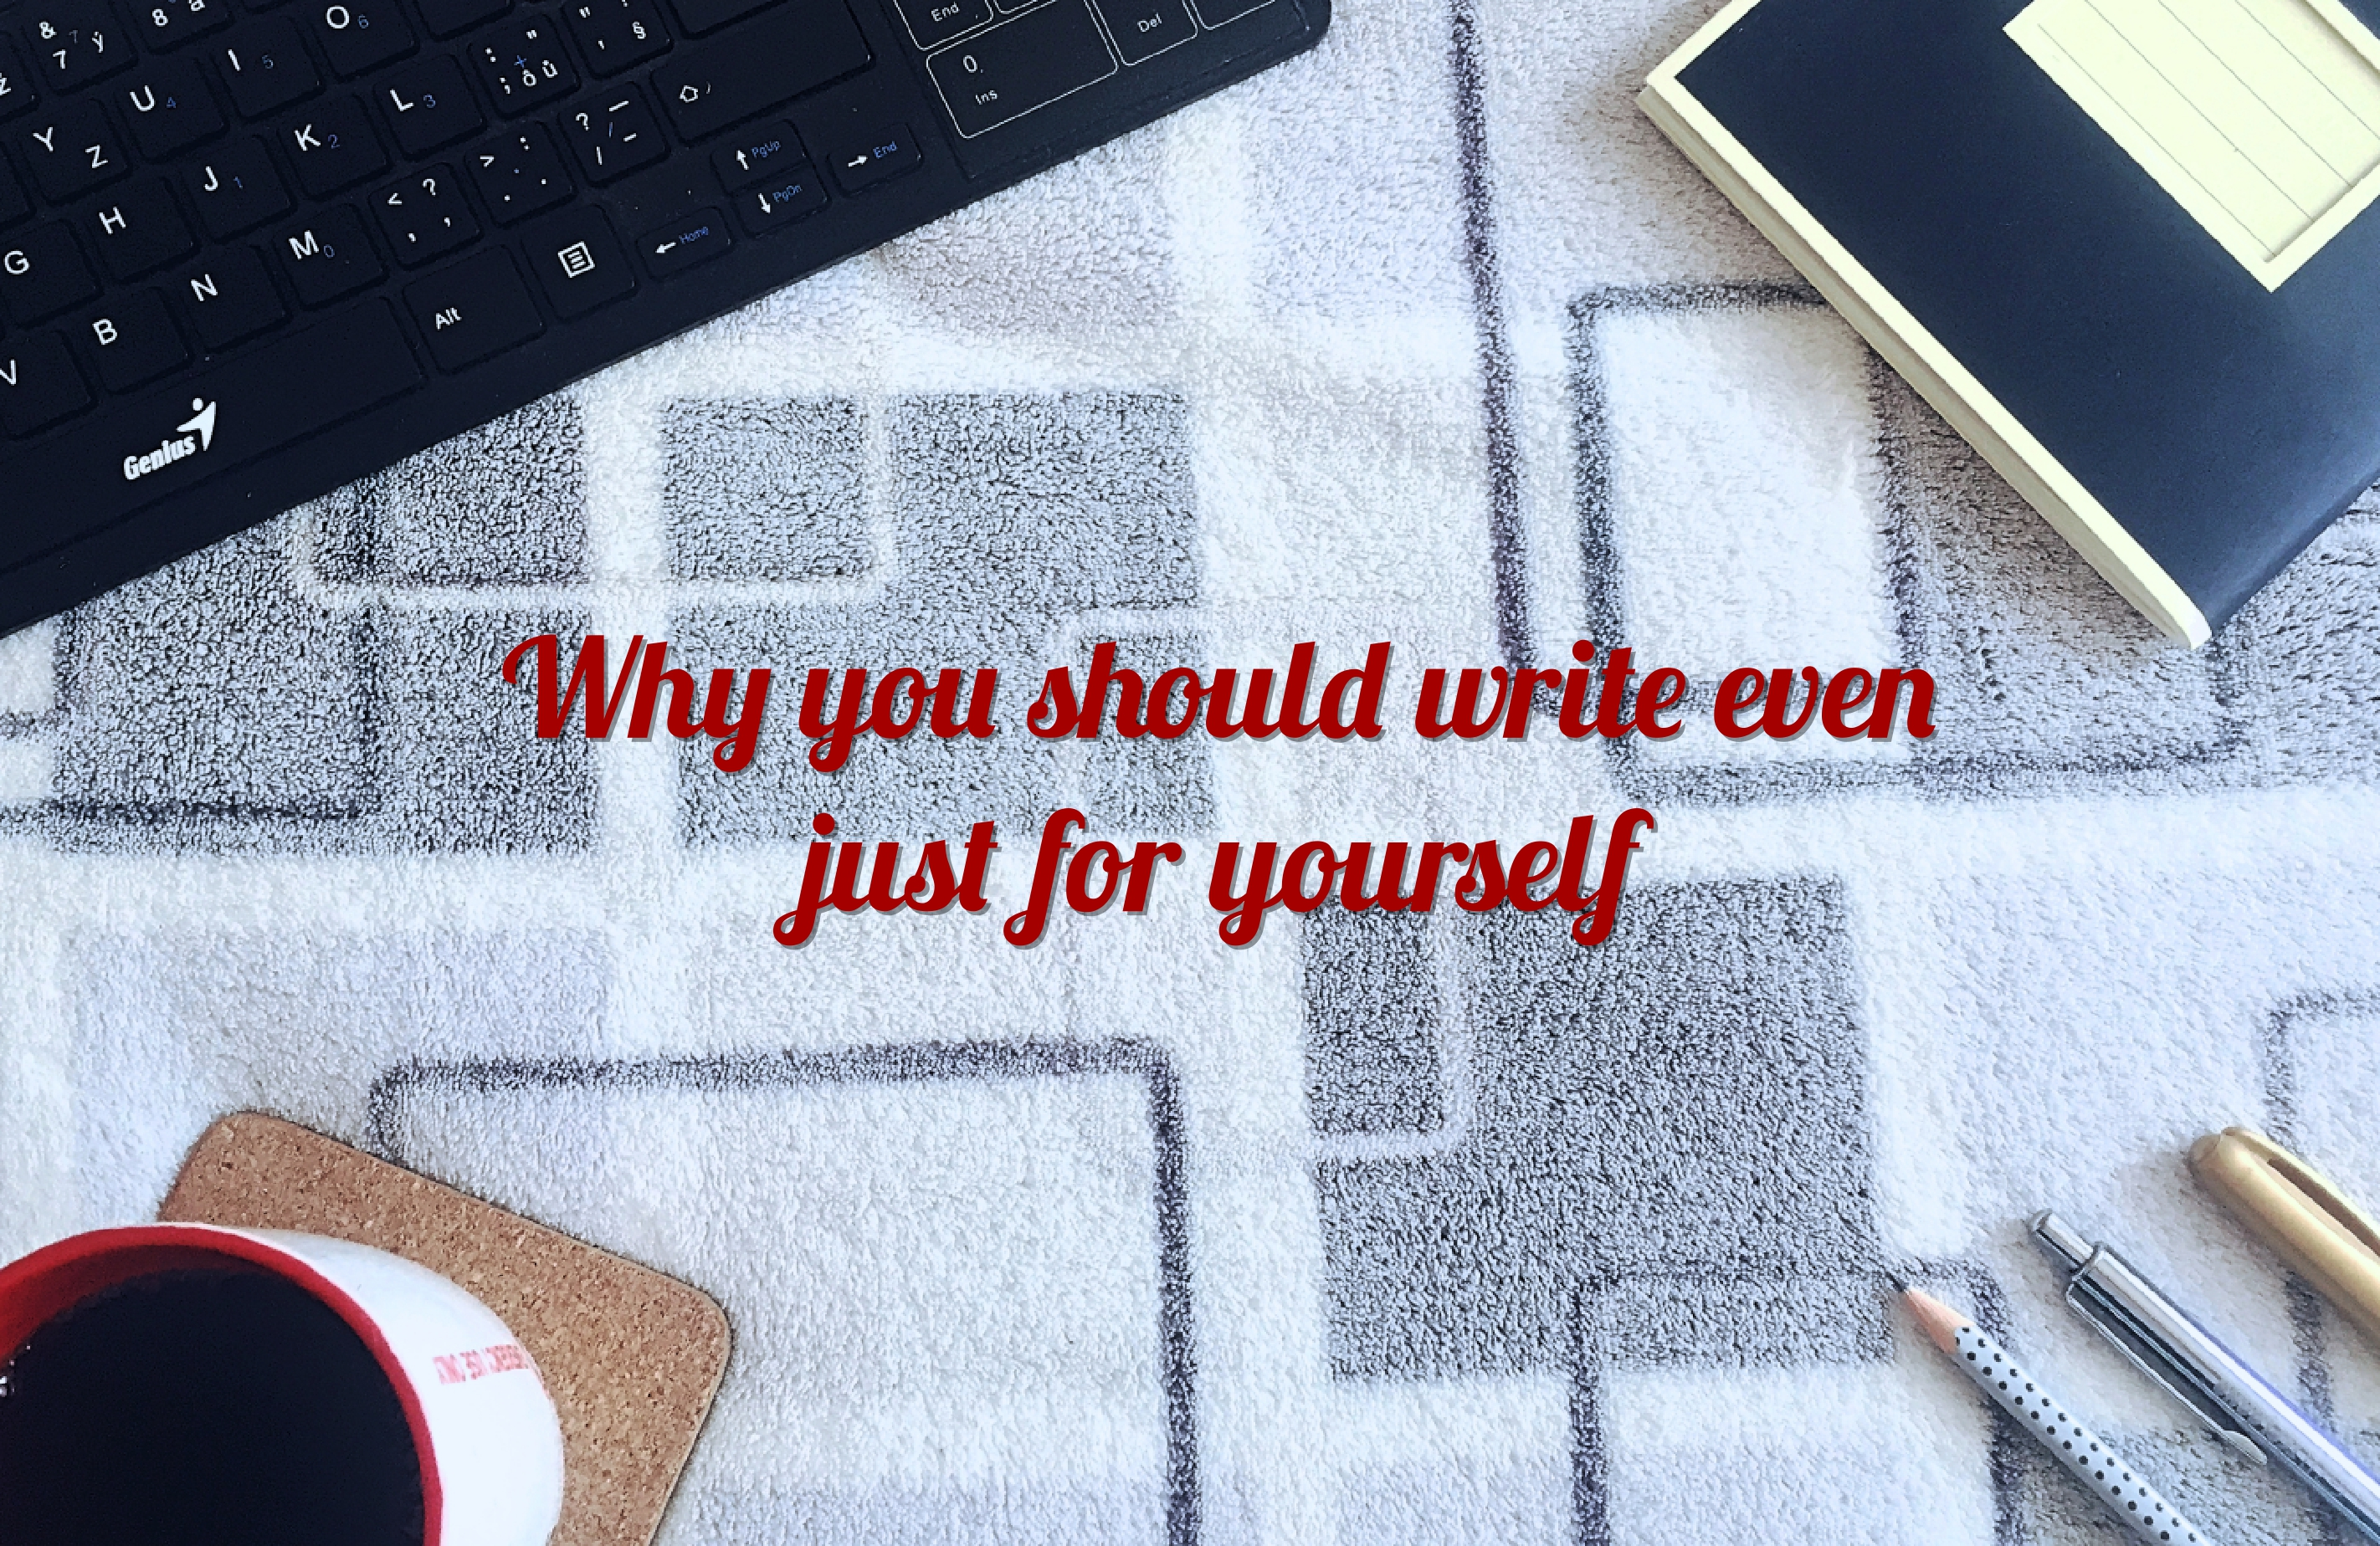 Why you should write even just for yourself